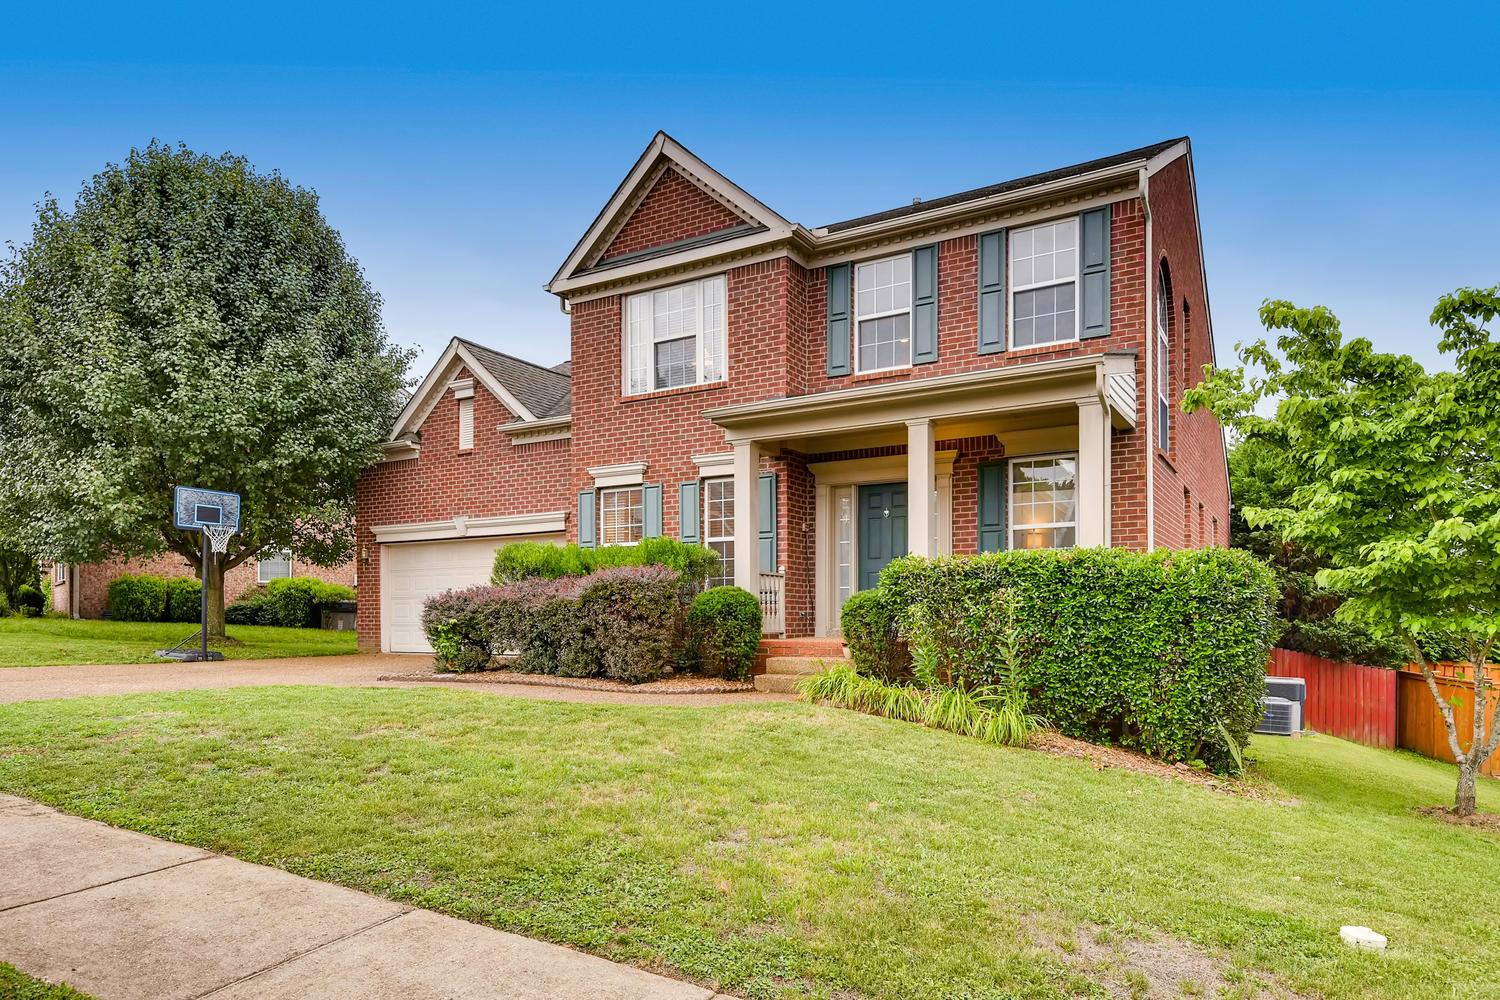 1208 Applecross Dr, Nashville-Southeast in Davidson County County, TN 37220 Home for Sale